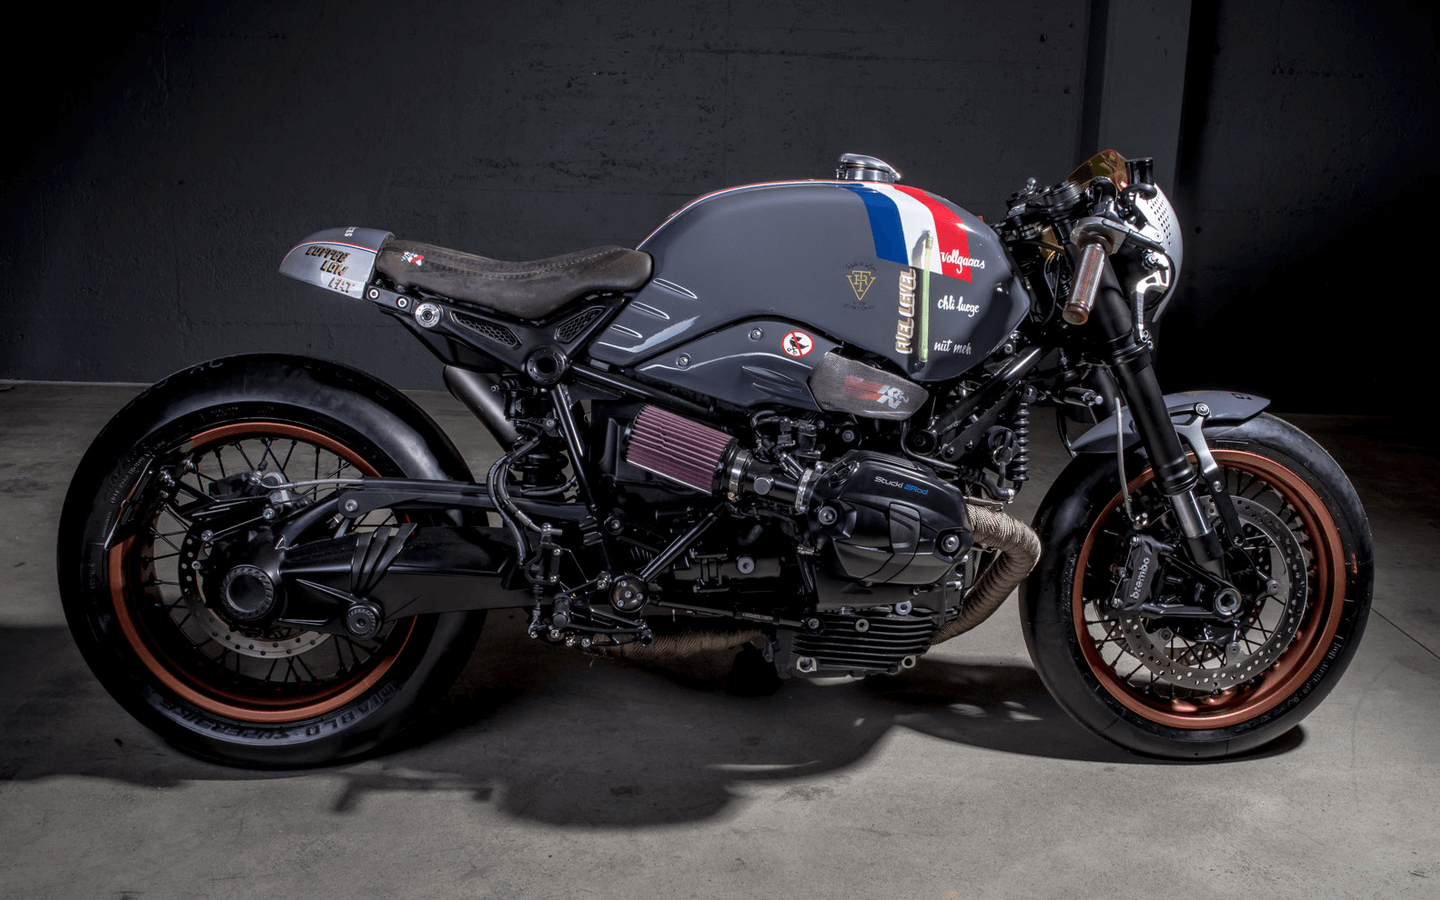 bmw r ninet custom by vtr customs. Black Bedroom Furniture Sets. Home Design Ideas